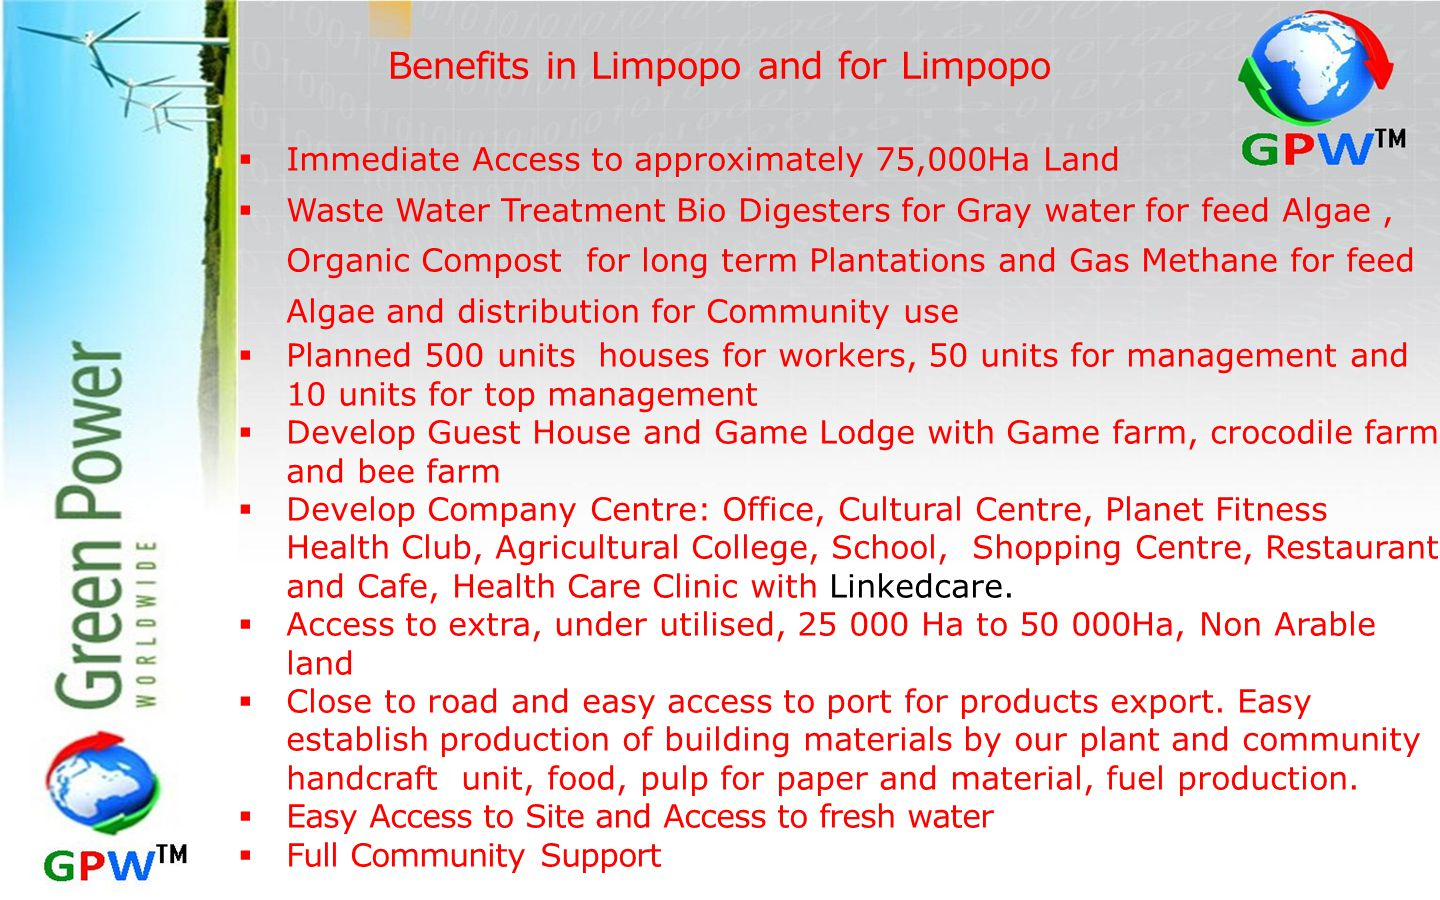 Benefits in Limpopo and for Limpopo